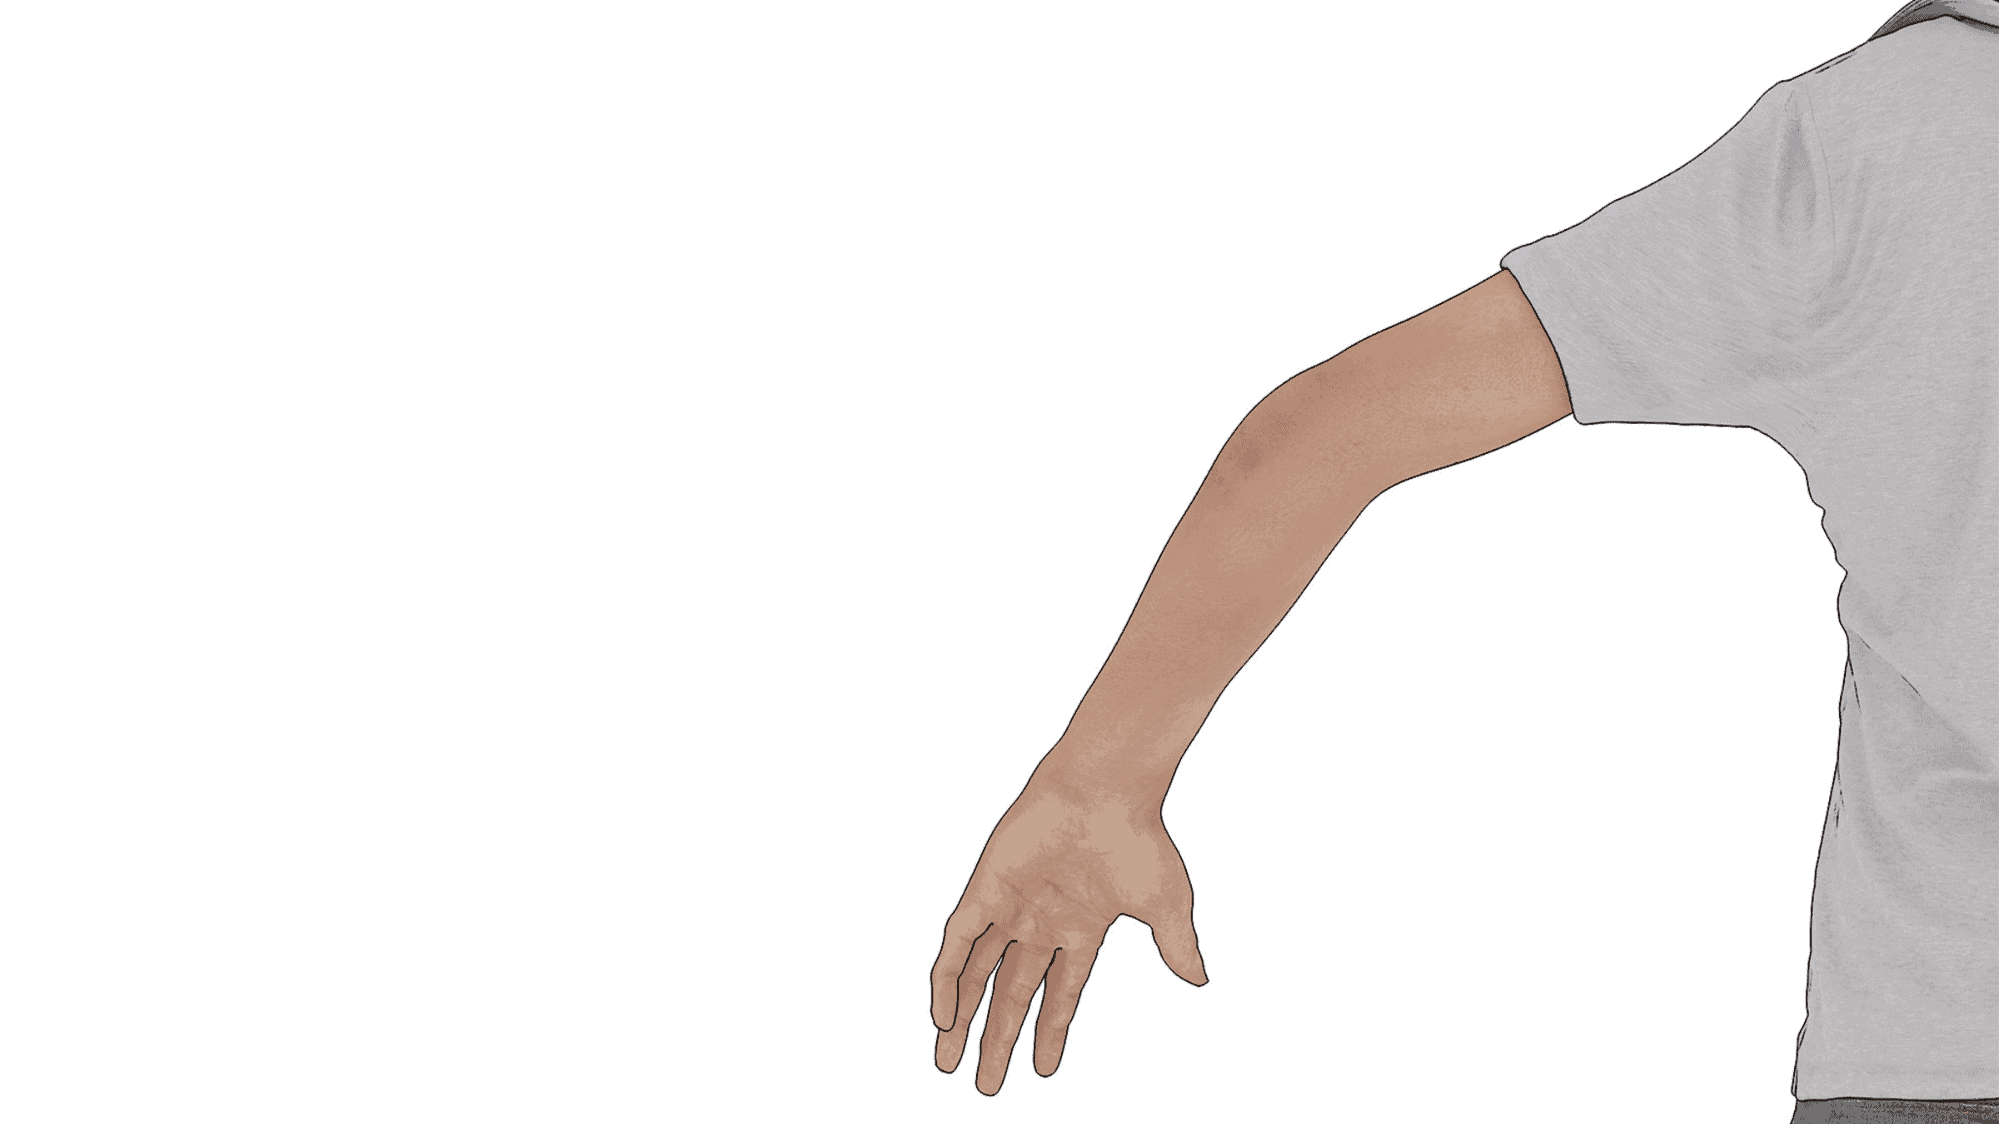 driver using hand signal to slow down or stop